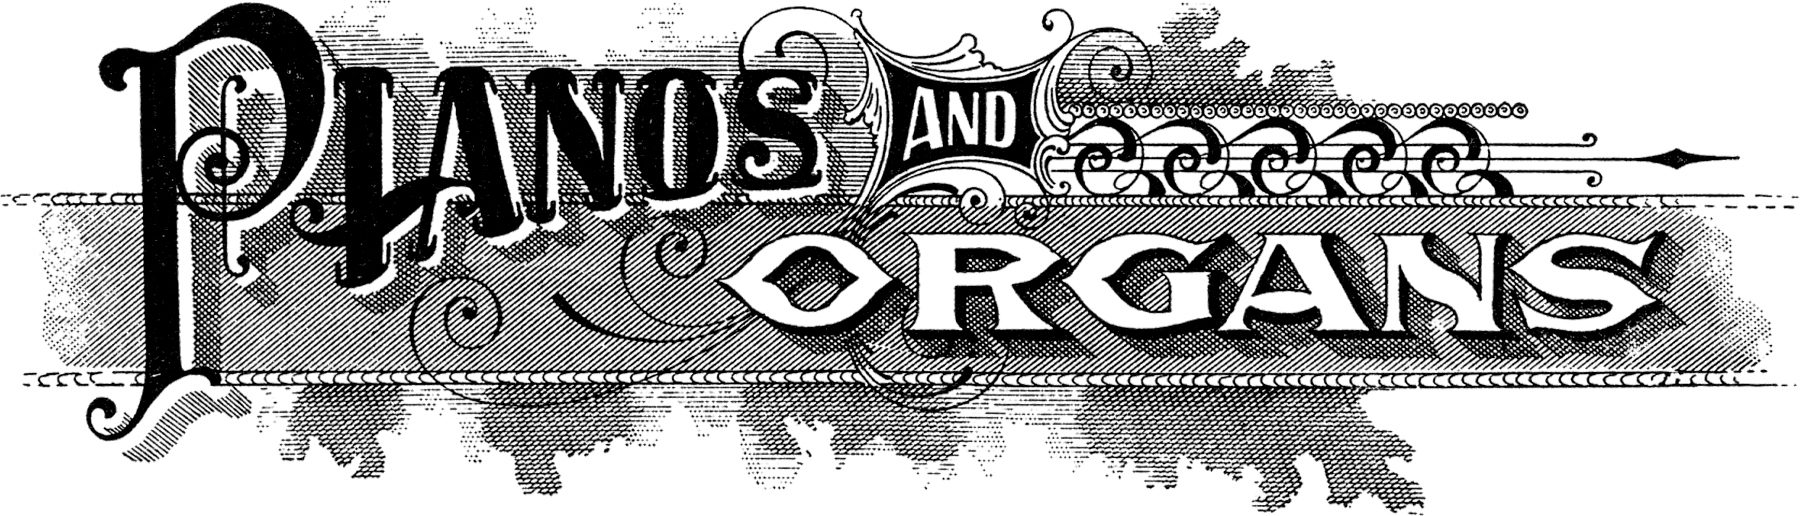 Antique Piano Sign Image! - The Graphics Fairy